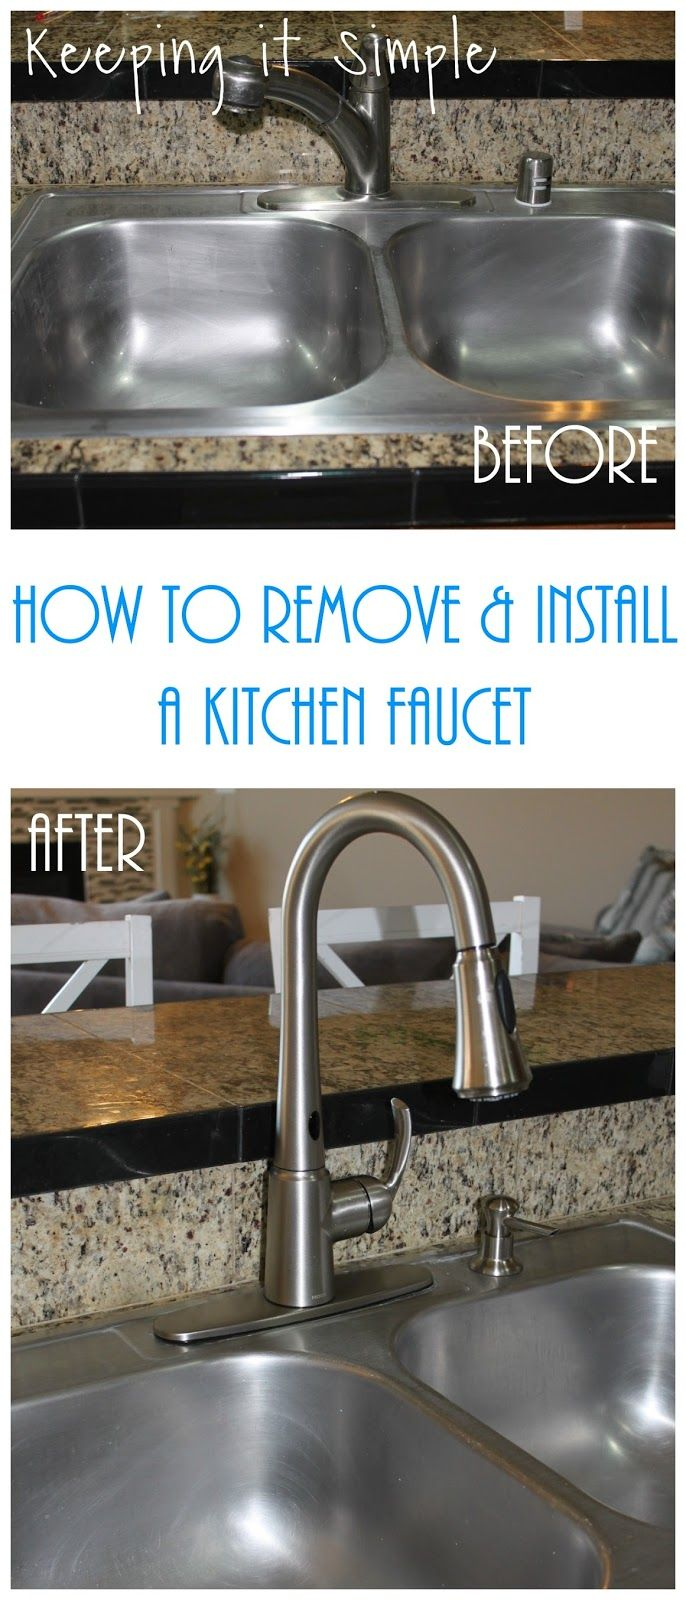 best 25 kitchen faucet repair ideas on pinterest leaky faucet how to remove an old faucet and how to install a new moen kitchen faucet